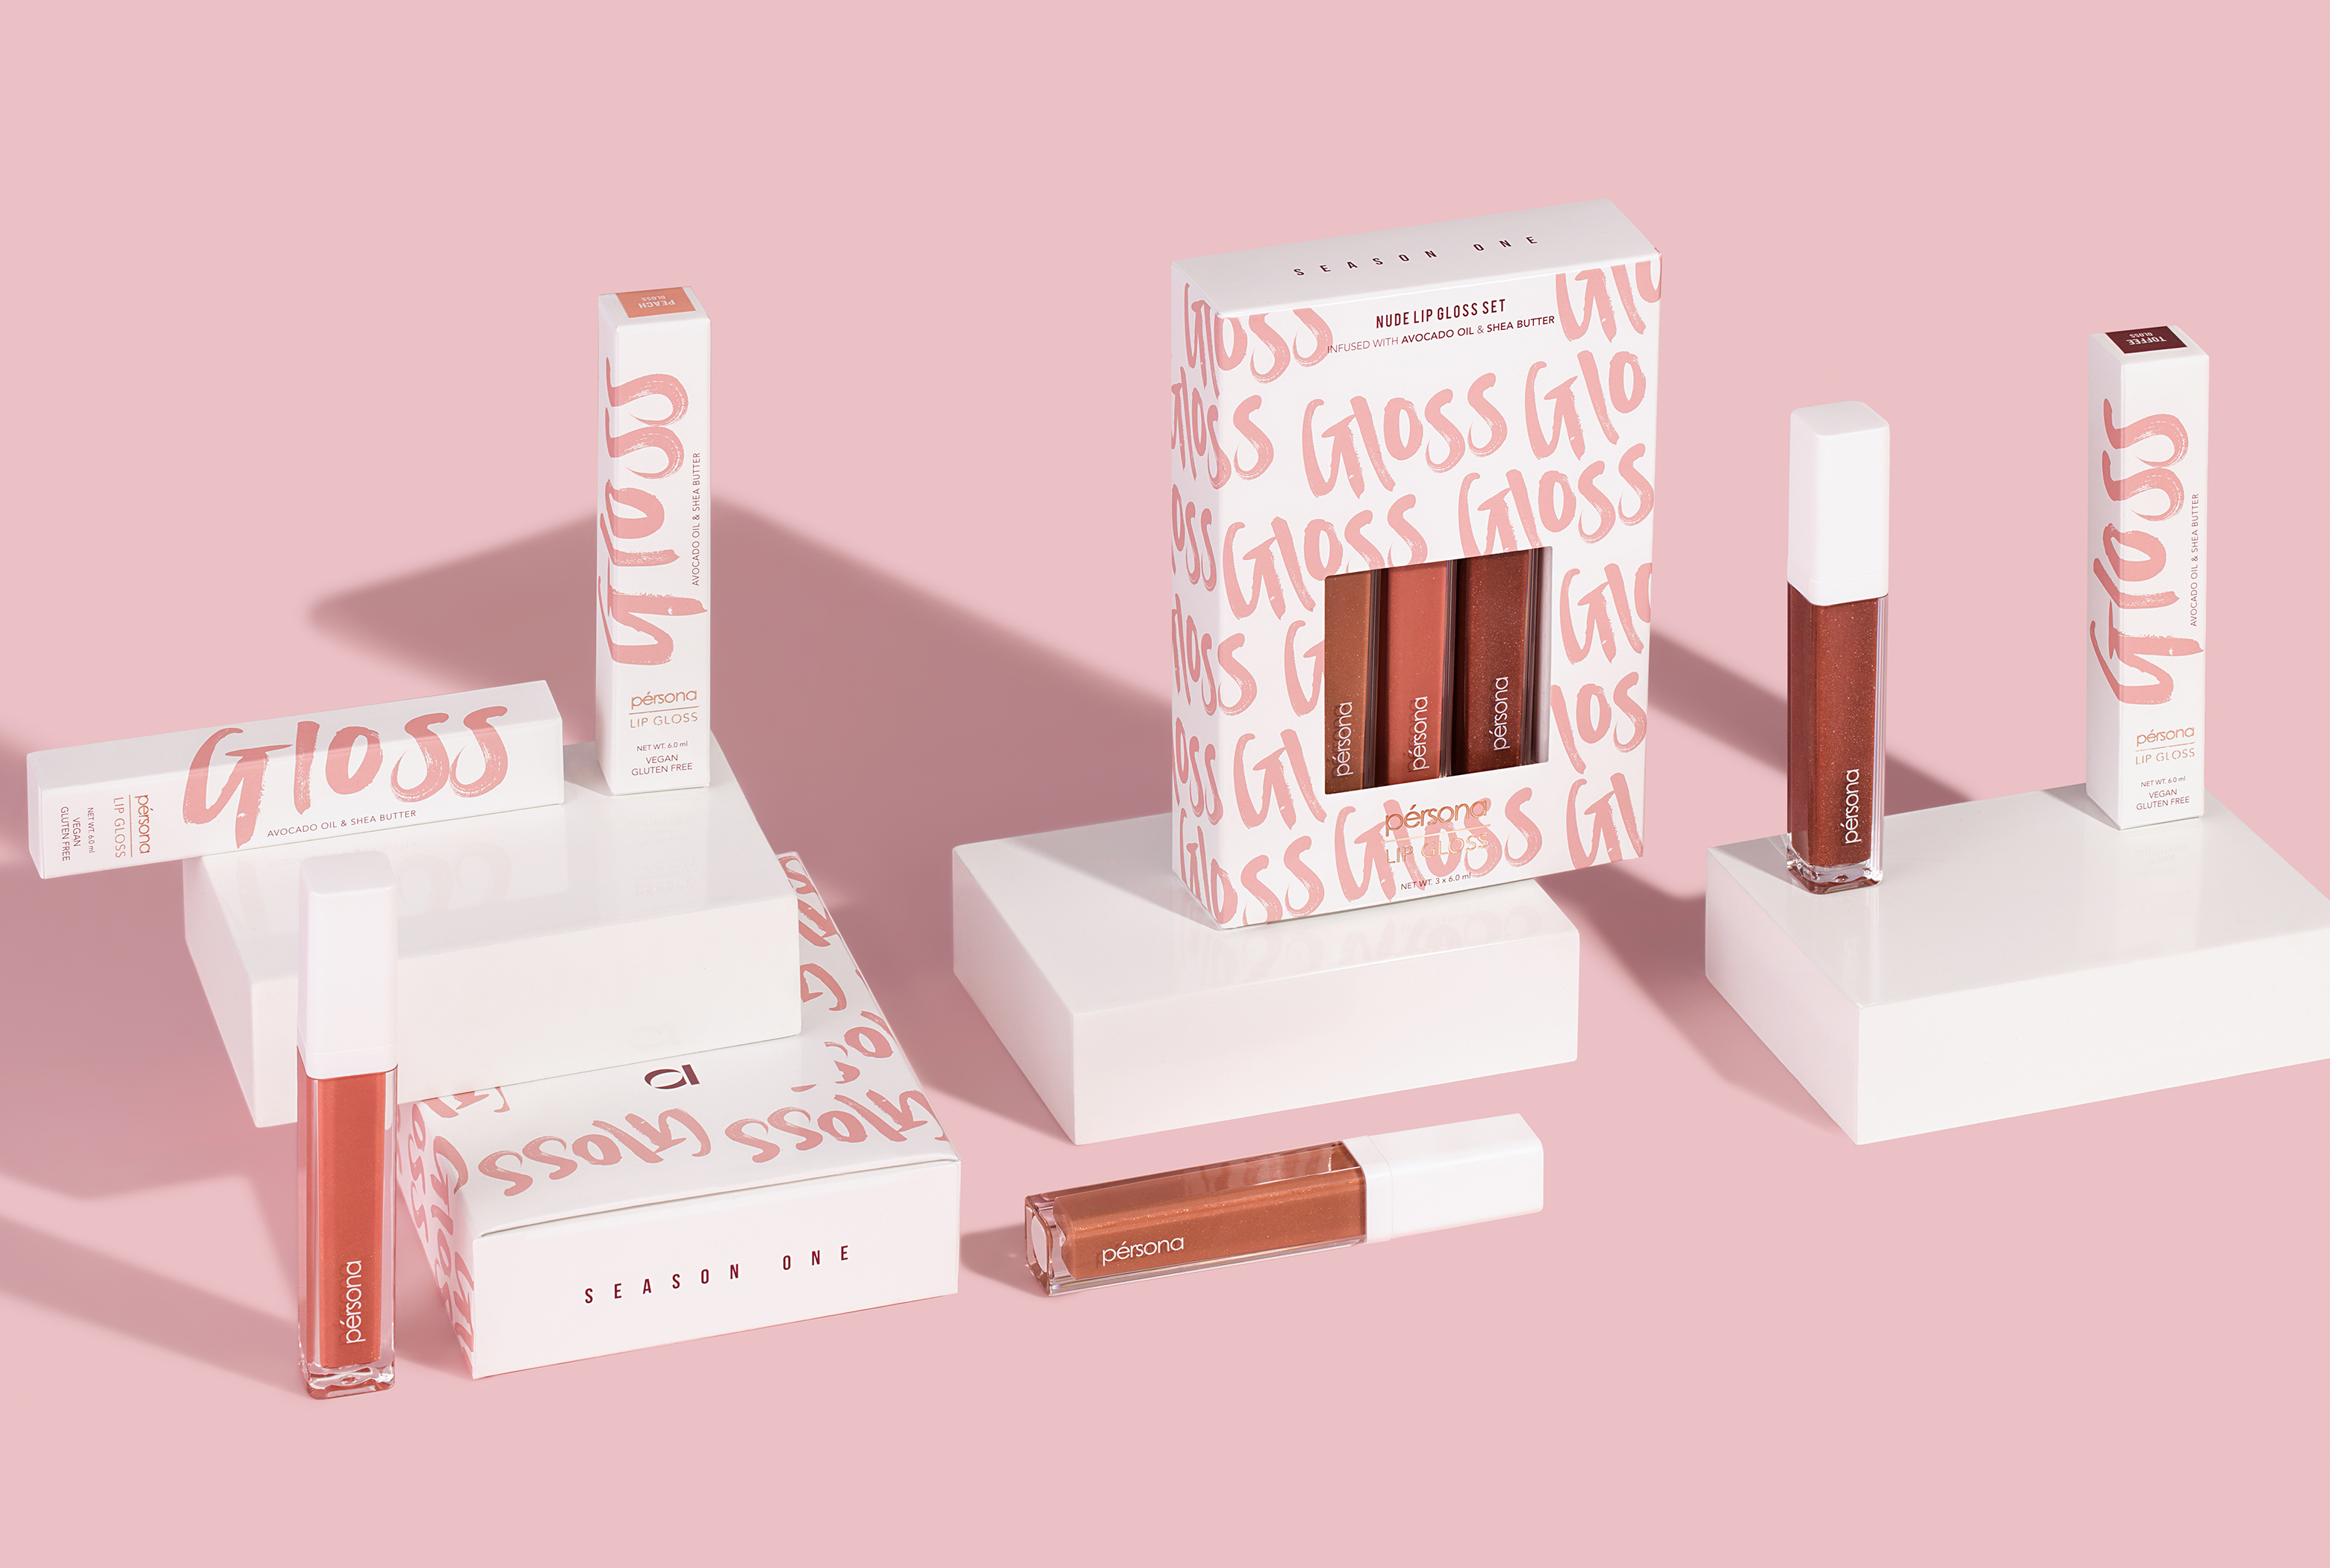 Persona cosmetics lip glosses